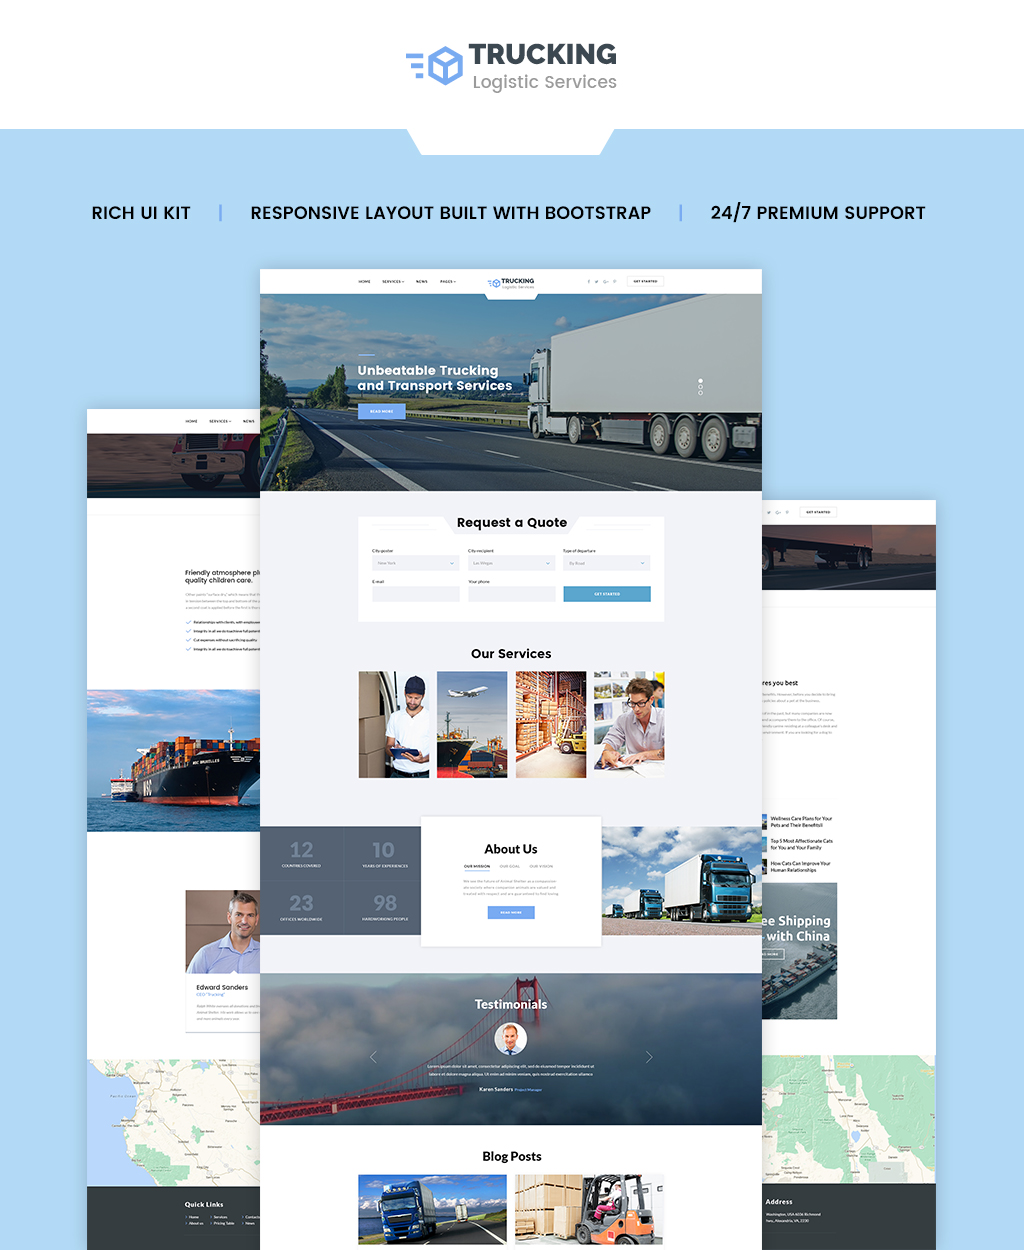 """Trucking - Logistics & Transportation Services HTML"" - адаптивний Шаблон сайту №62264"